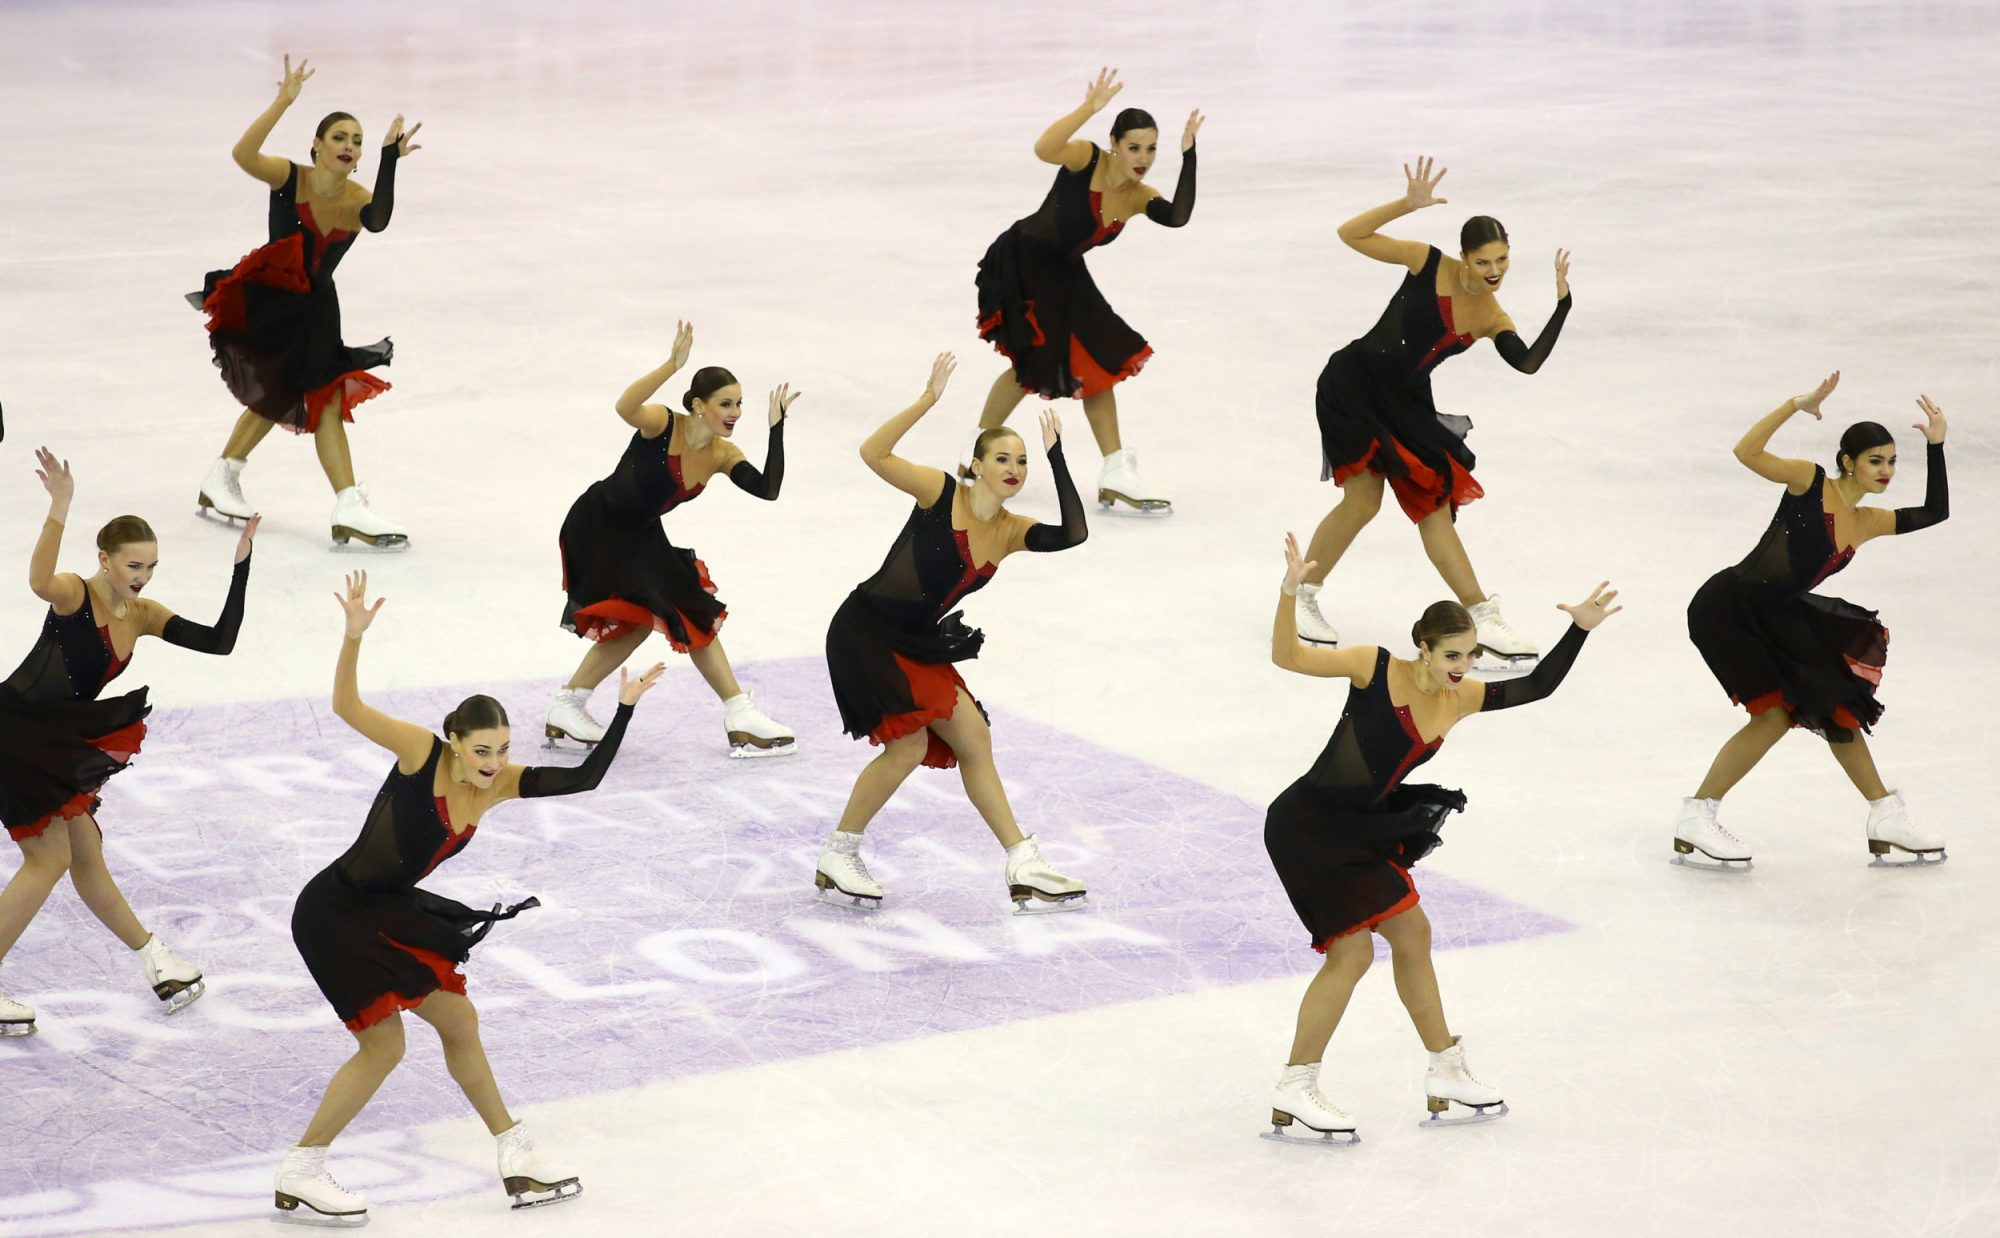 Photo of the Synchronized Skating Event at the ISU Figure Skating Grand Prix Final 2015-2016